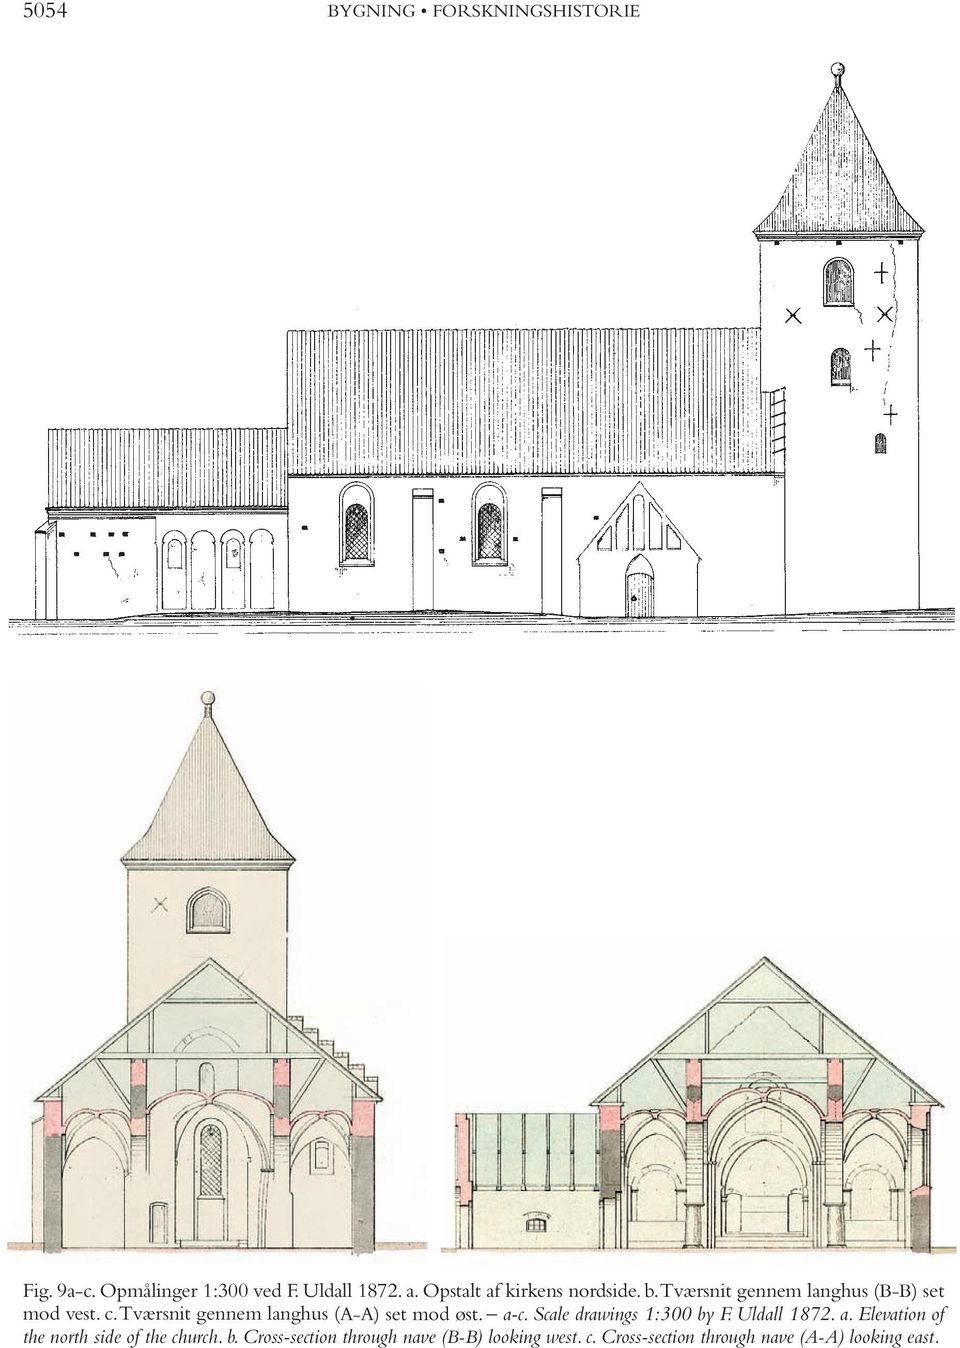 Tværsnit gennem langhus (A-A) set mod øst. a-c. Scale drawings 1:300 by F. Uldall 1872. a. Elevation of the north side of the church.